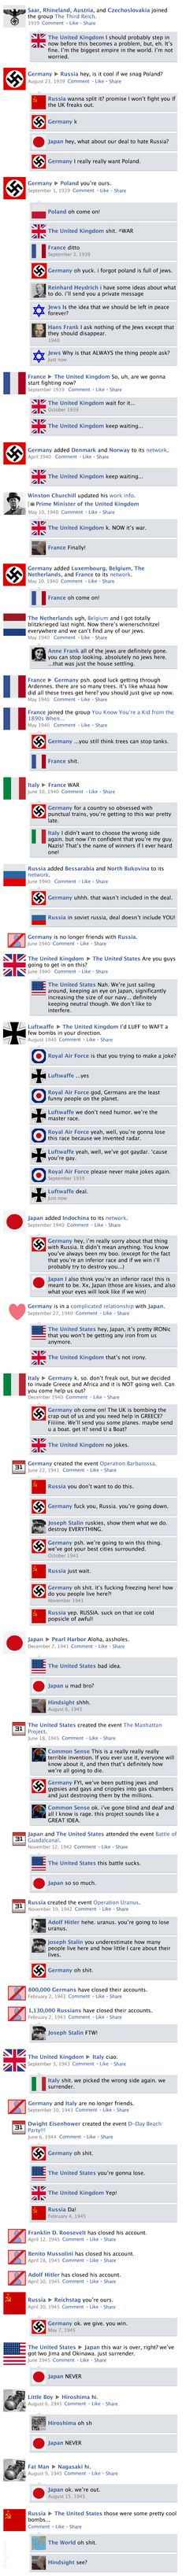 Facebook News Feed History of the World > WWII